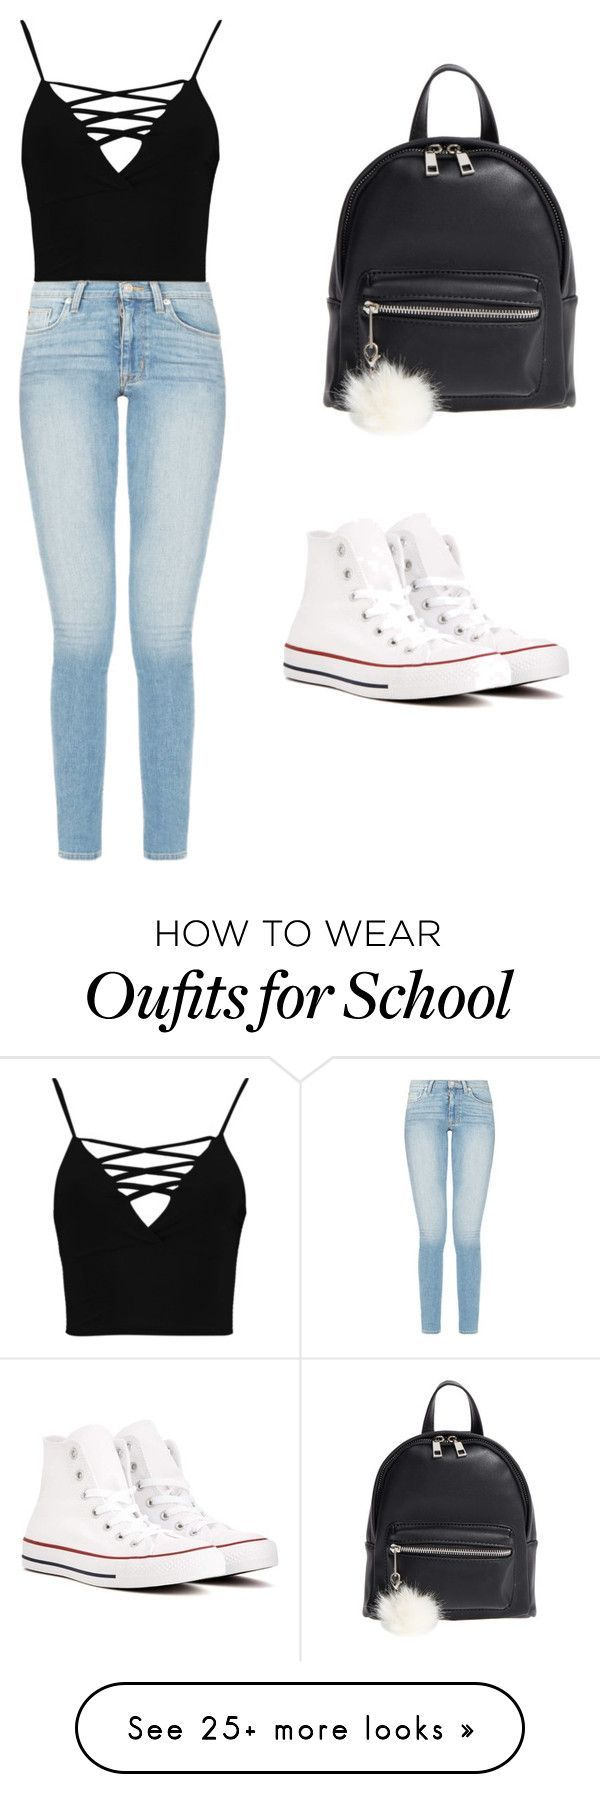 School Outfit #3 #dresscode by nyanamartin on Polyvore featuring Boohoo, Converse and BP.